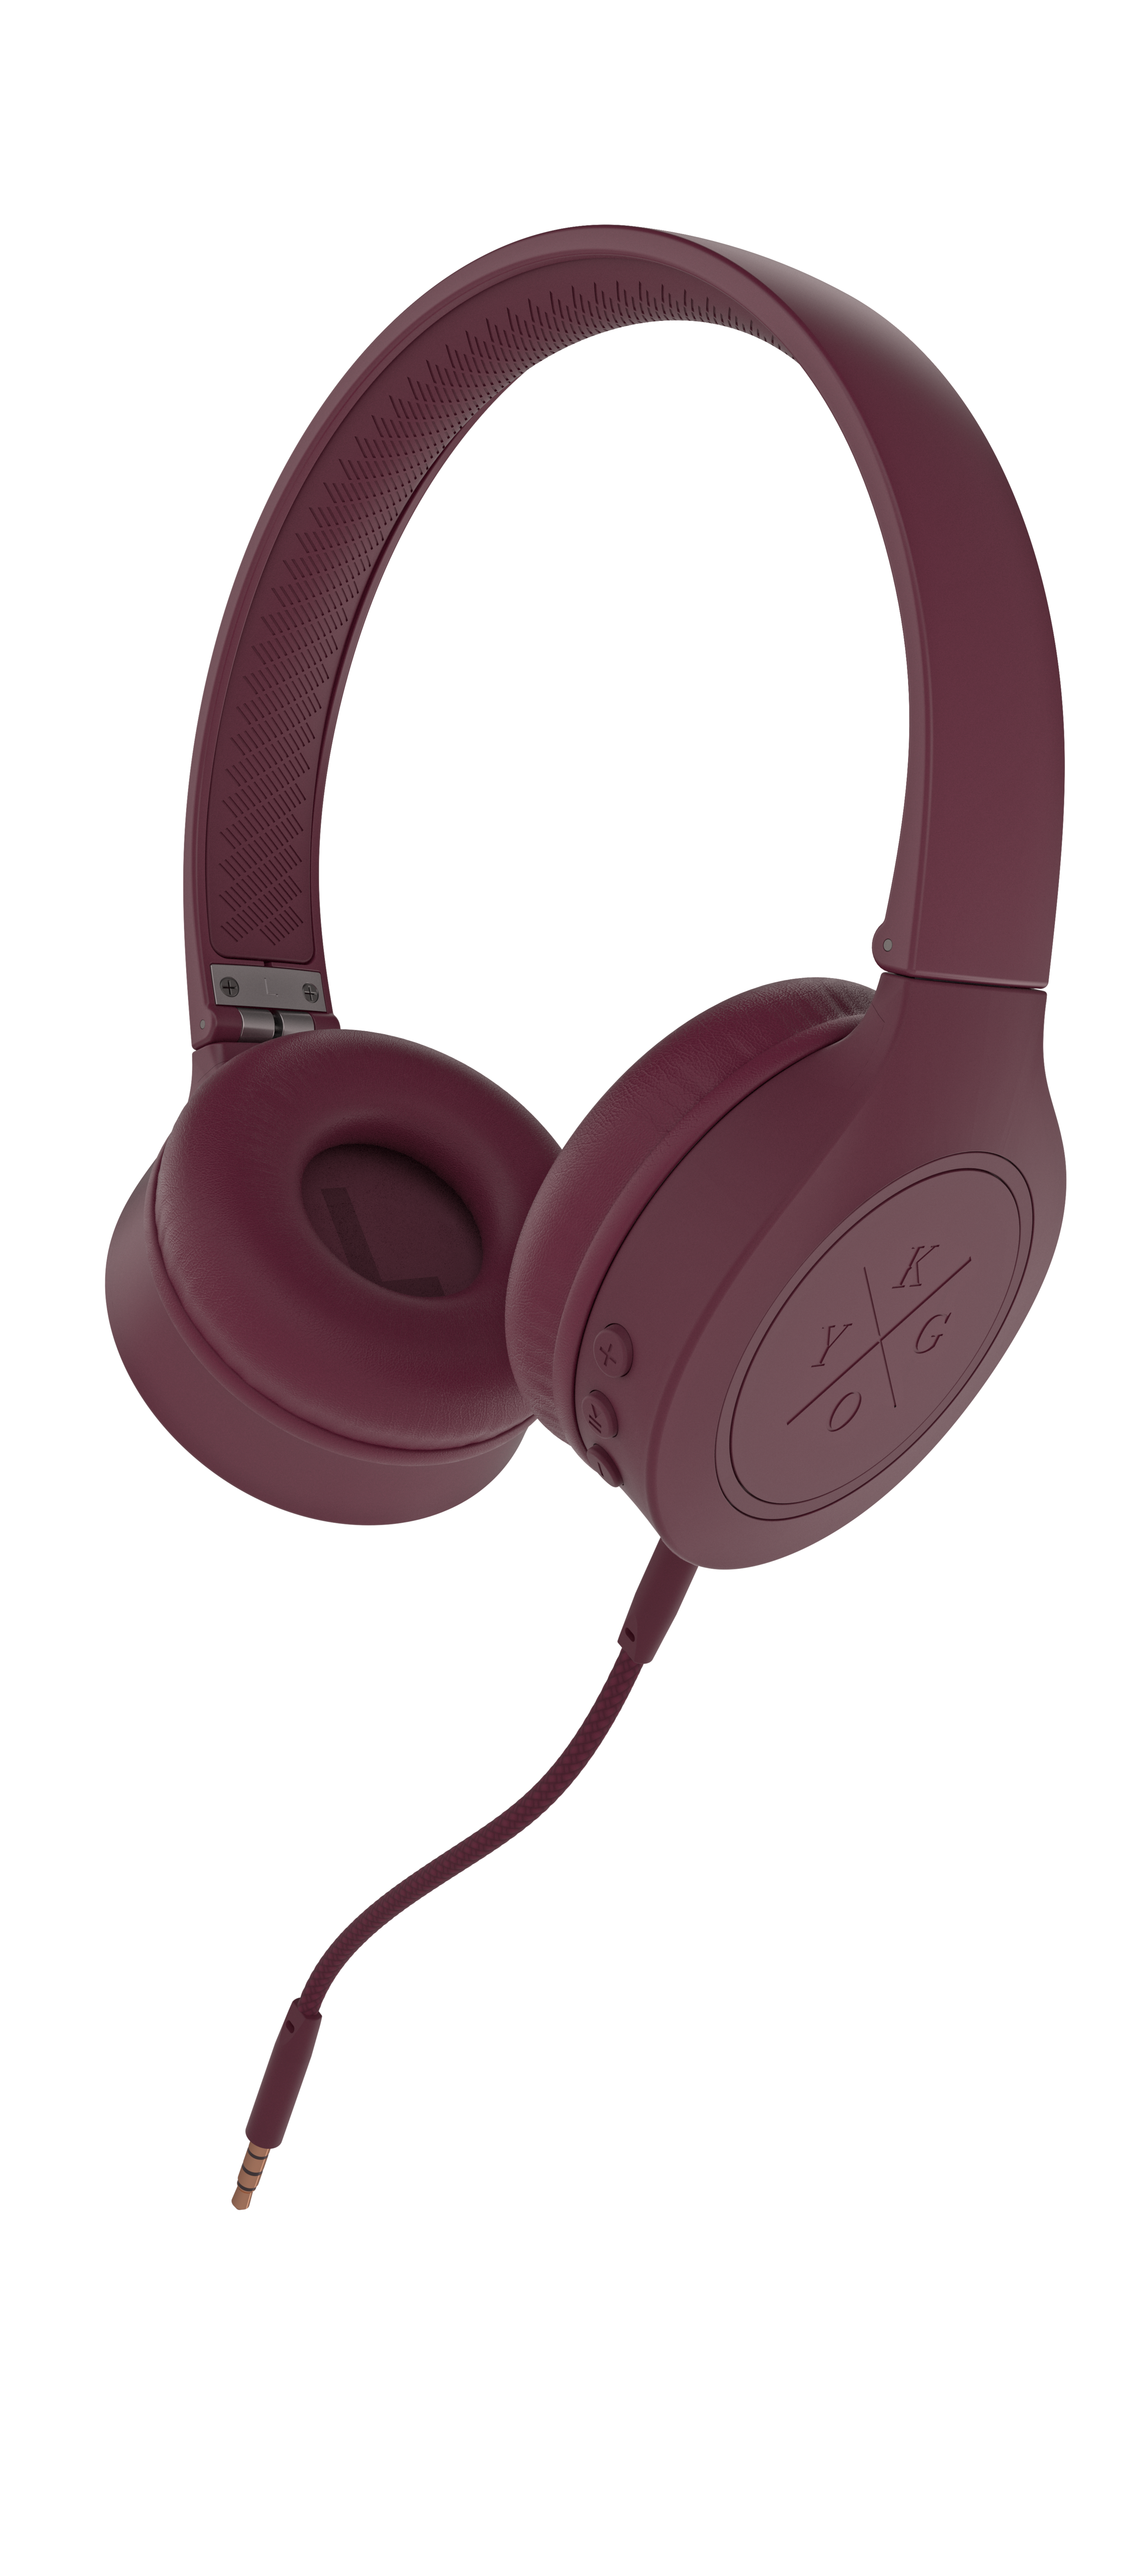 A2 300 Burgundy Wired  xy -40 z -8.5 DistanceCamera 410 LensLenght 60 2017-06-23 copy.png